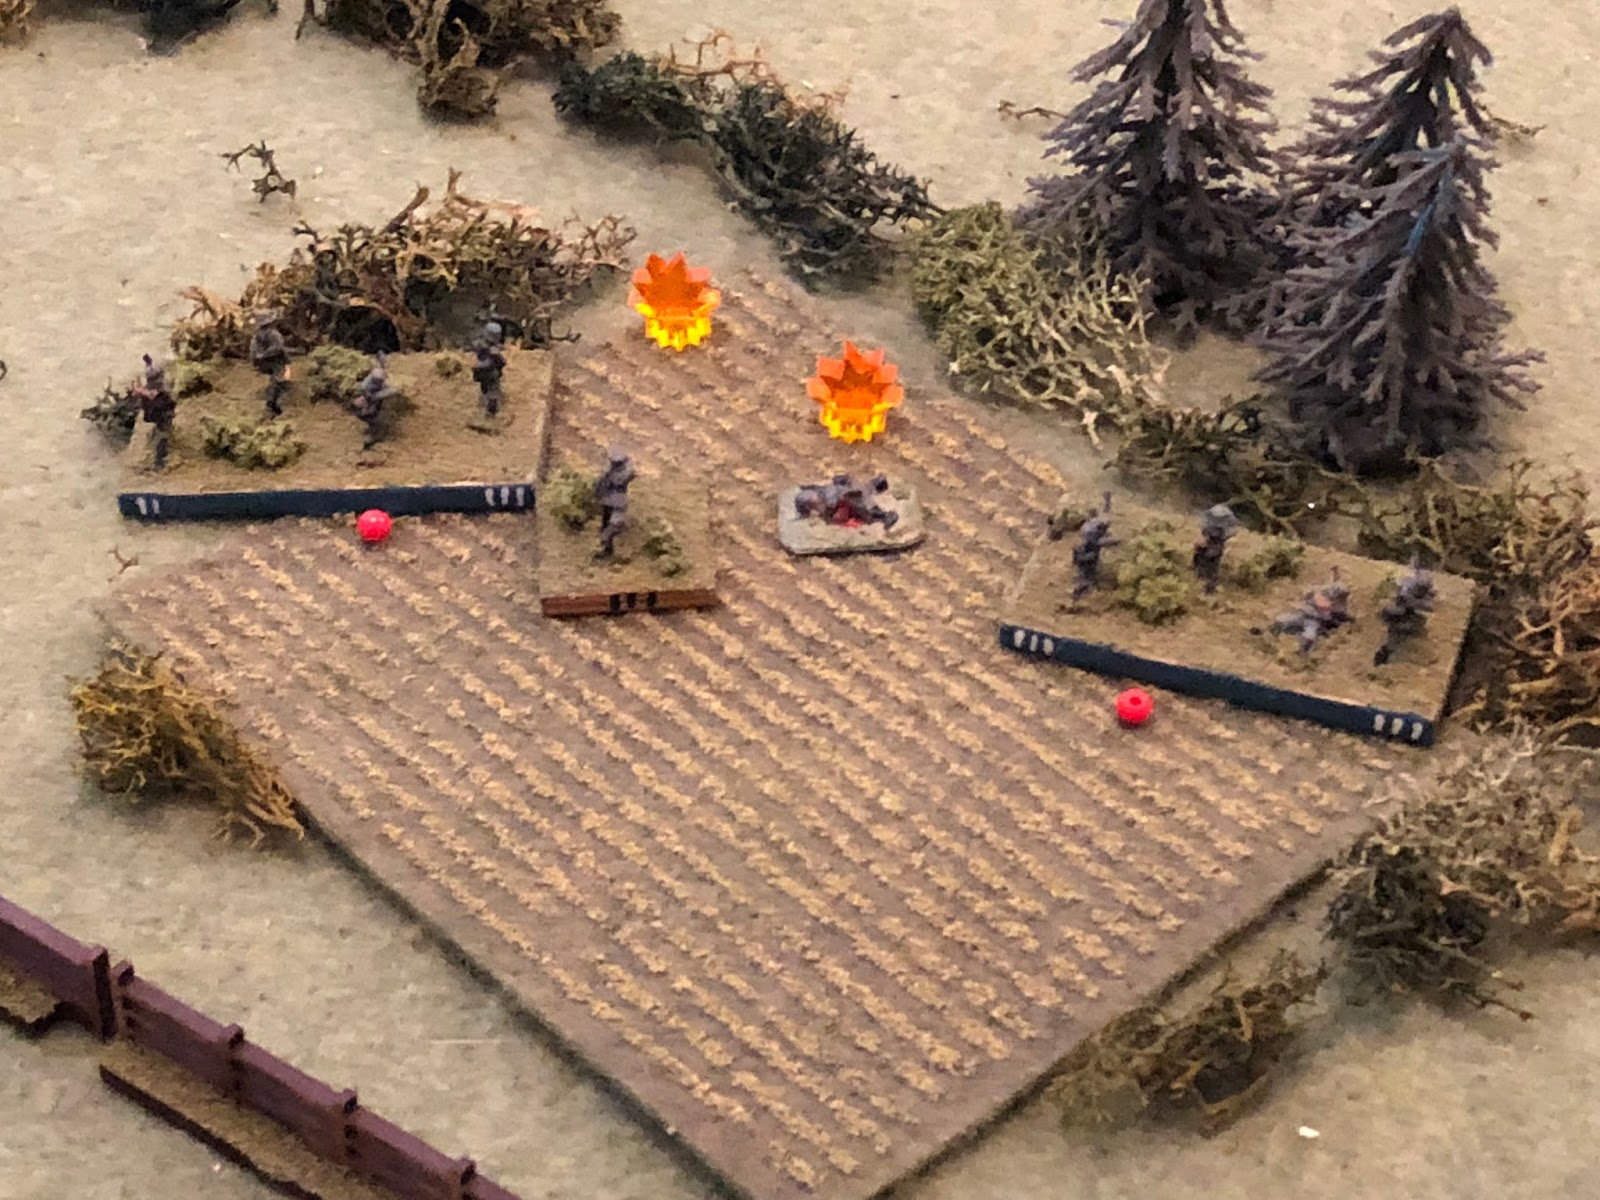 And the fire is vicious!  Sgt Imhofe's squad is eliminated, while Sgt Kandler and Cpl Rishel's squads are both suppressed!  *Ouch!  Good dice, but helped by the fact the French were firing down on the Germans, who were essentially in the open because of the elevated line of fire.